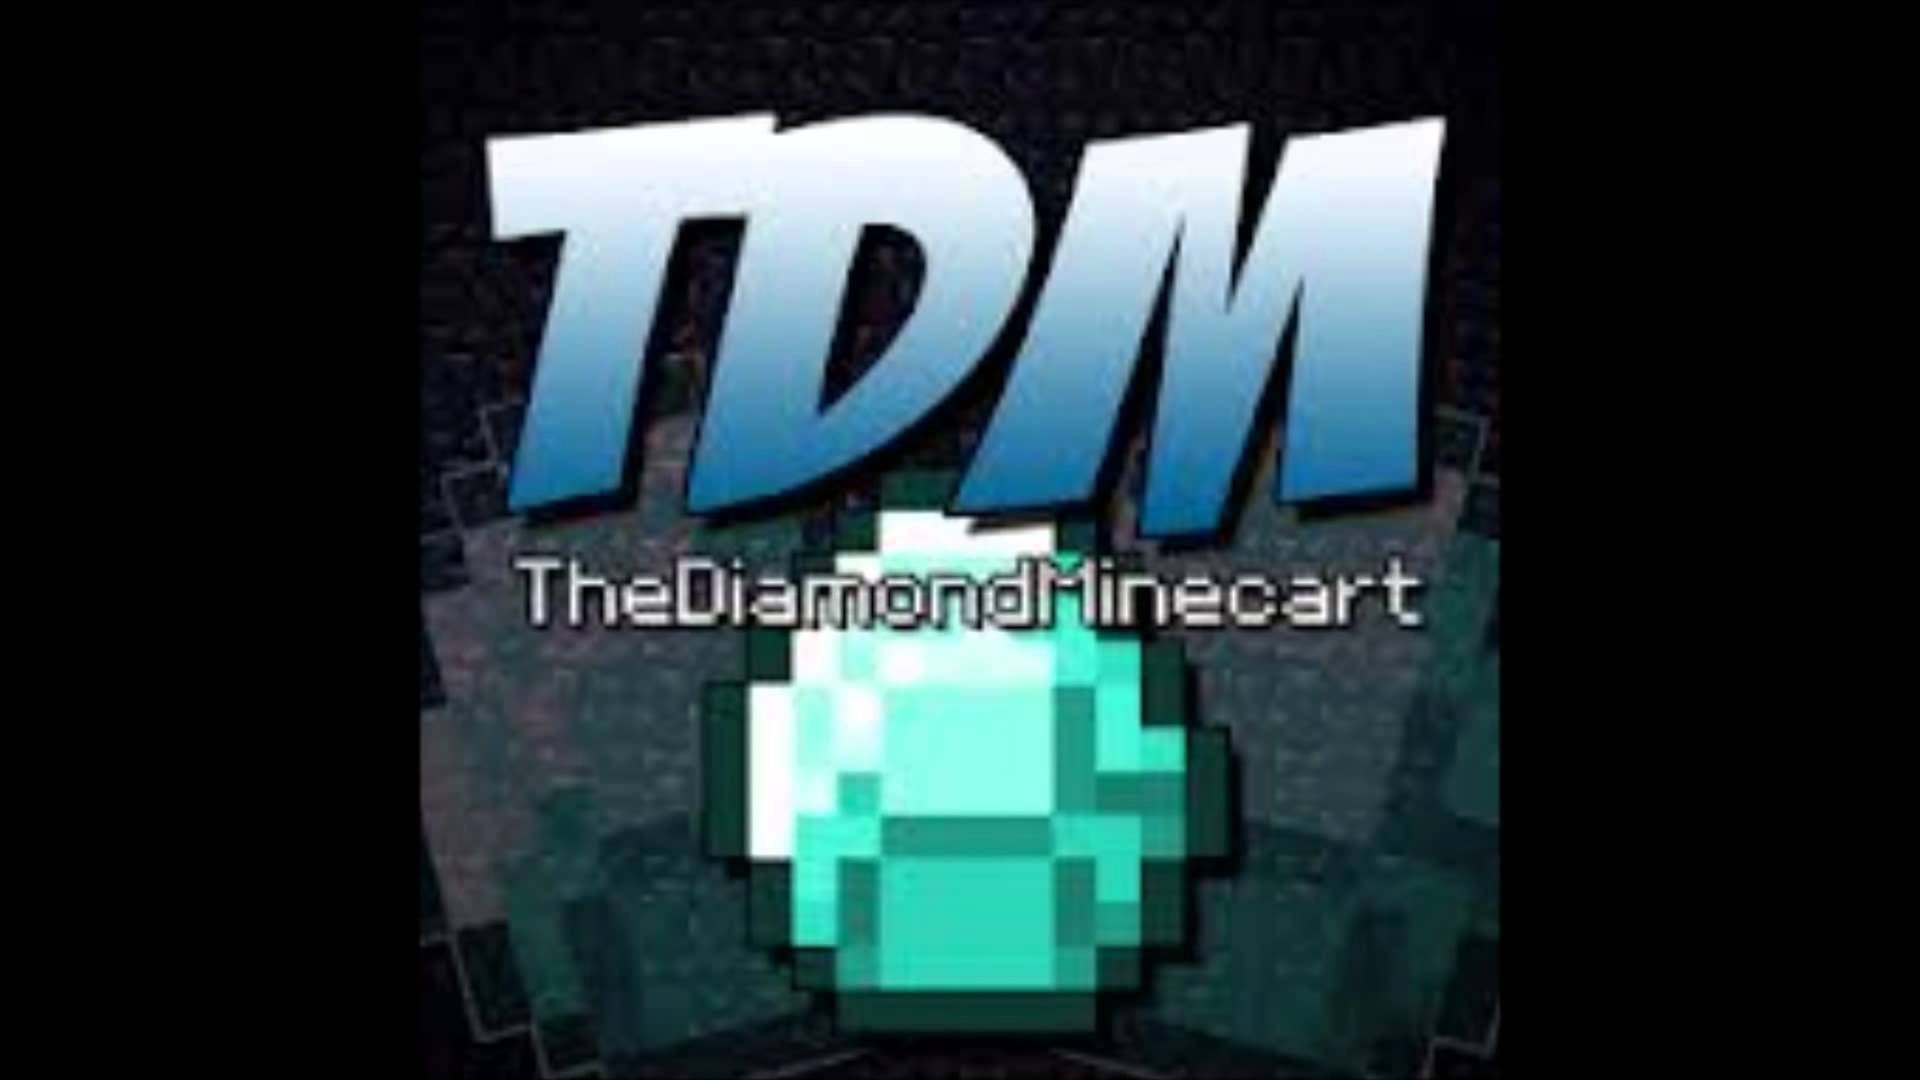 TheDiamondMinecart DANTDM intro song 1920x1080